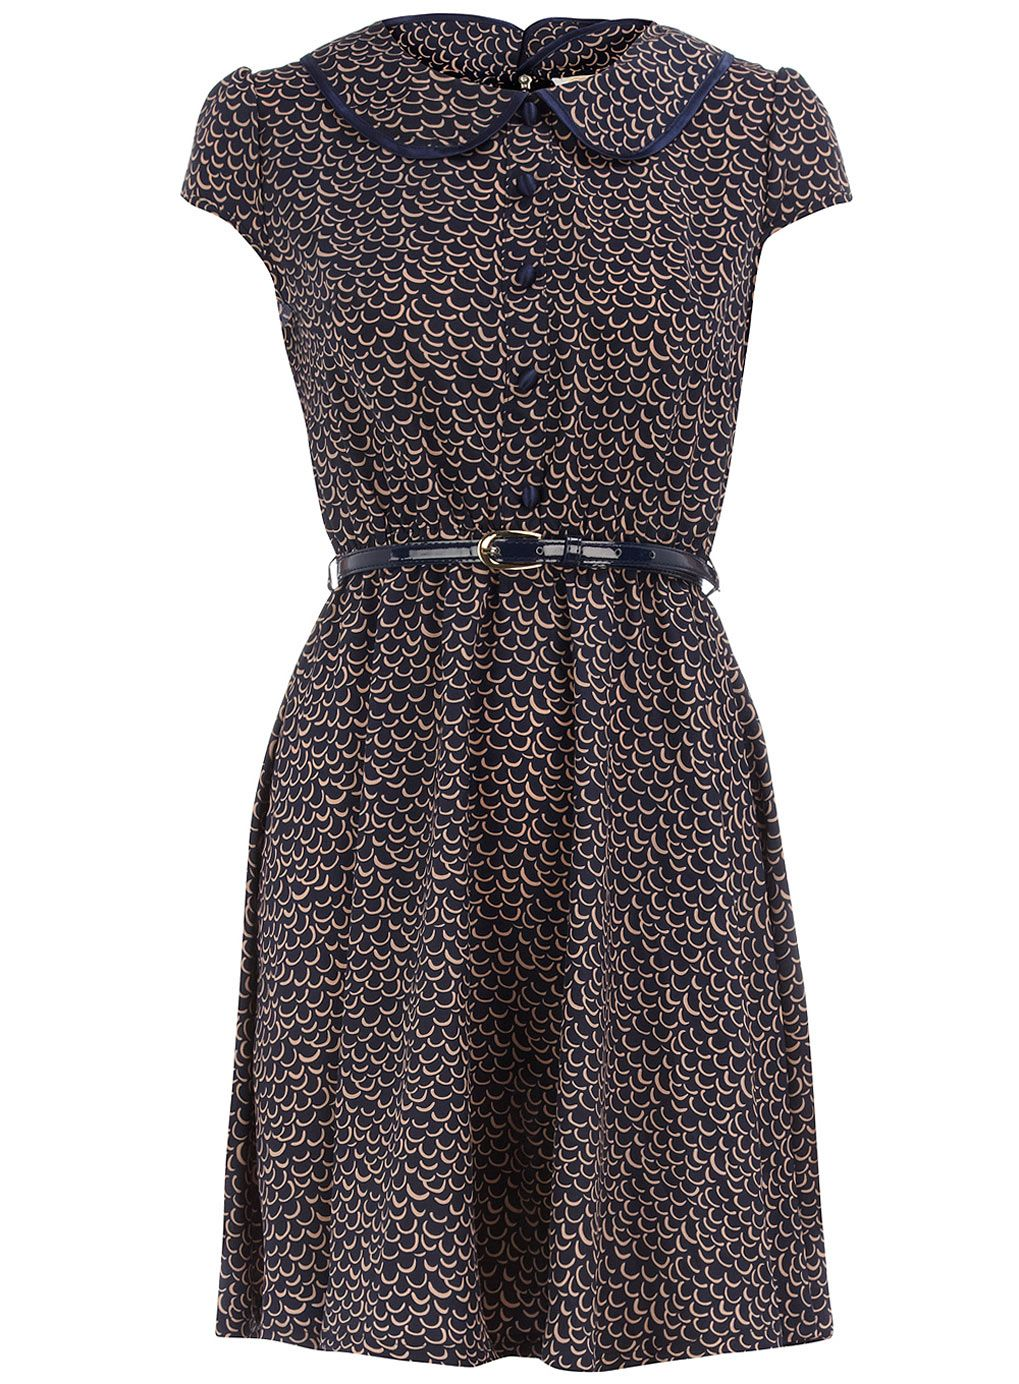 bae2fc7727ca Dorothy Perkins dress...this would look so cute with tights, boots and a  coat!